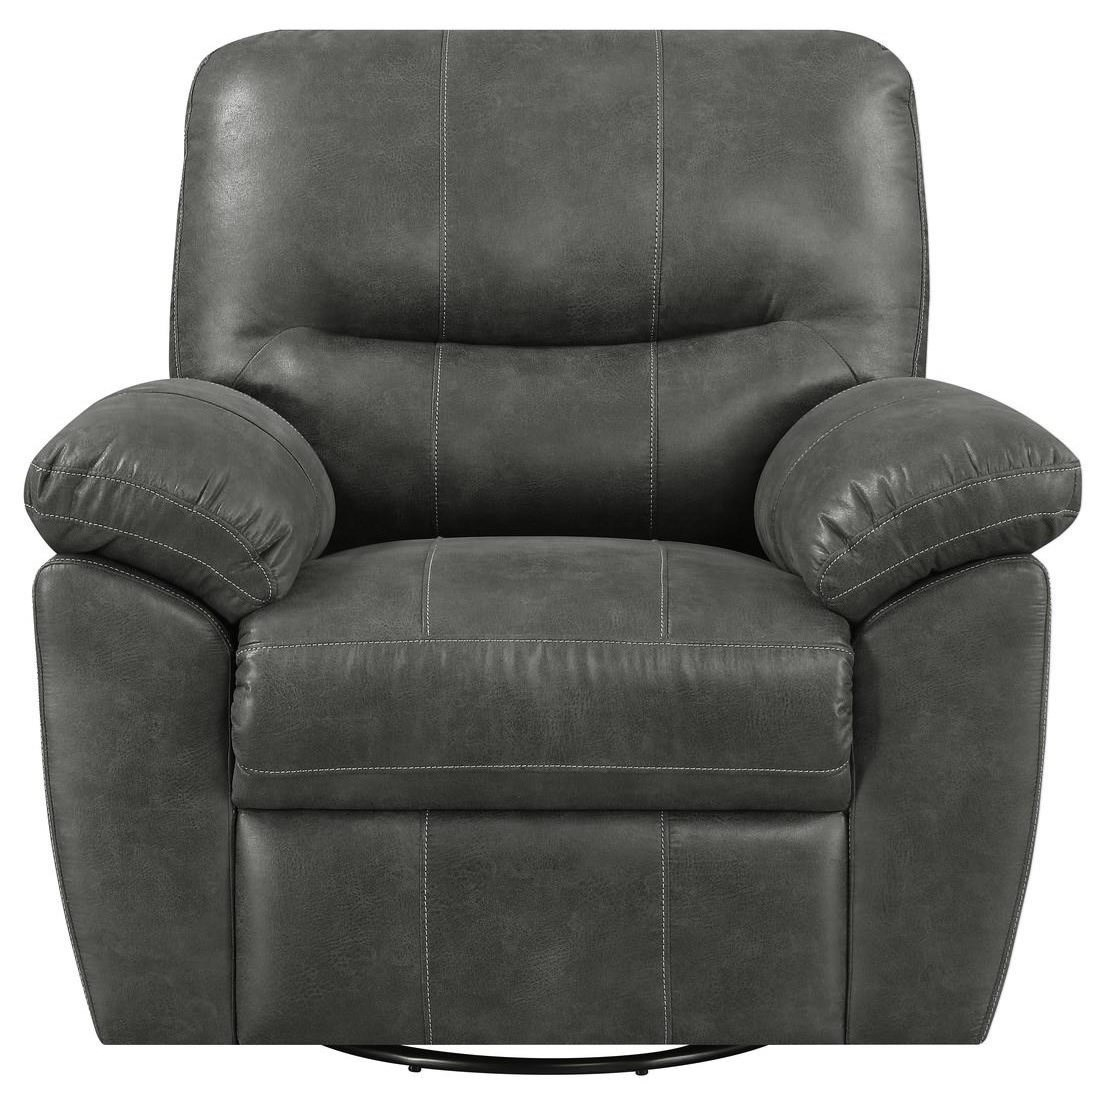 Nelson Swivel Glider Recliner by Emerald at Northeast Factory Direct